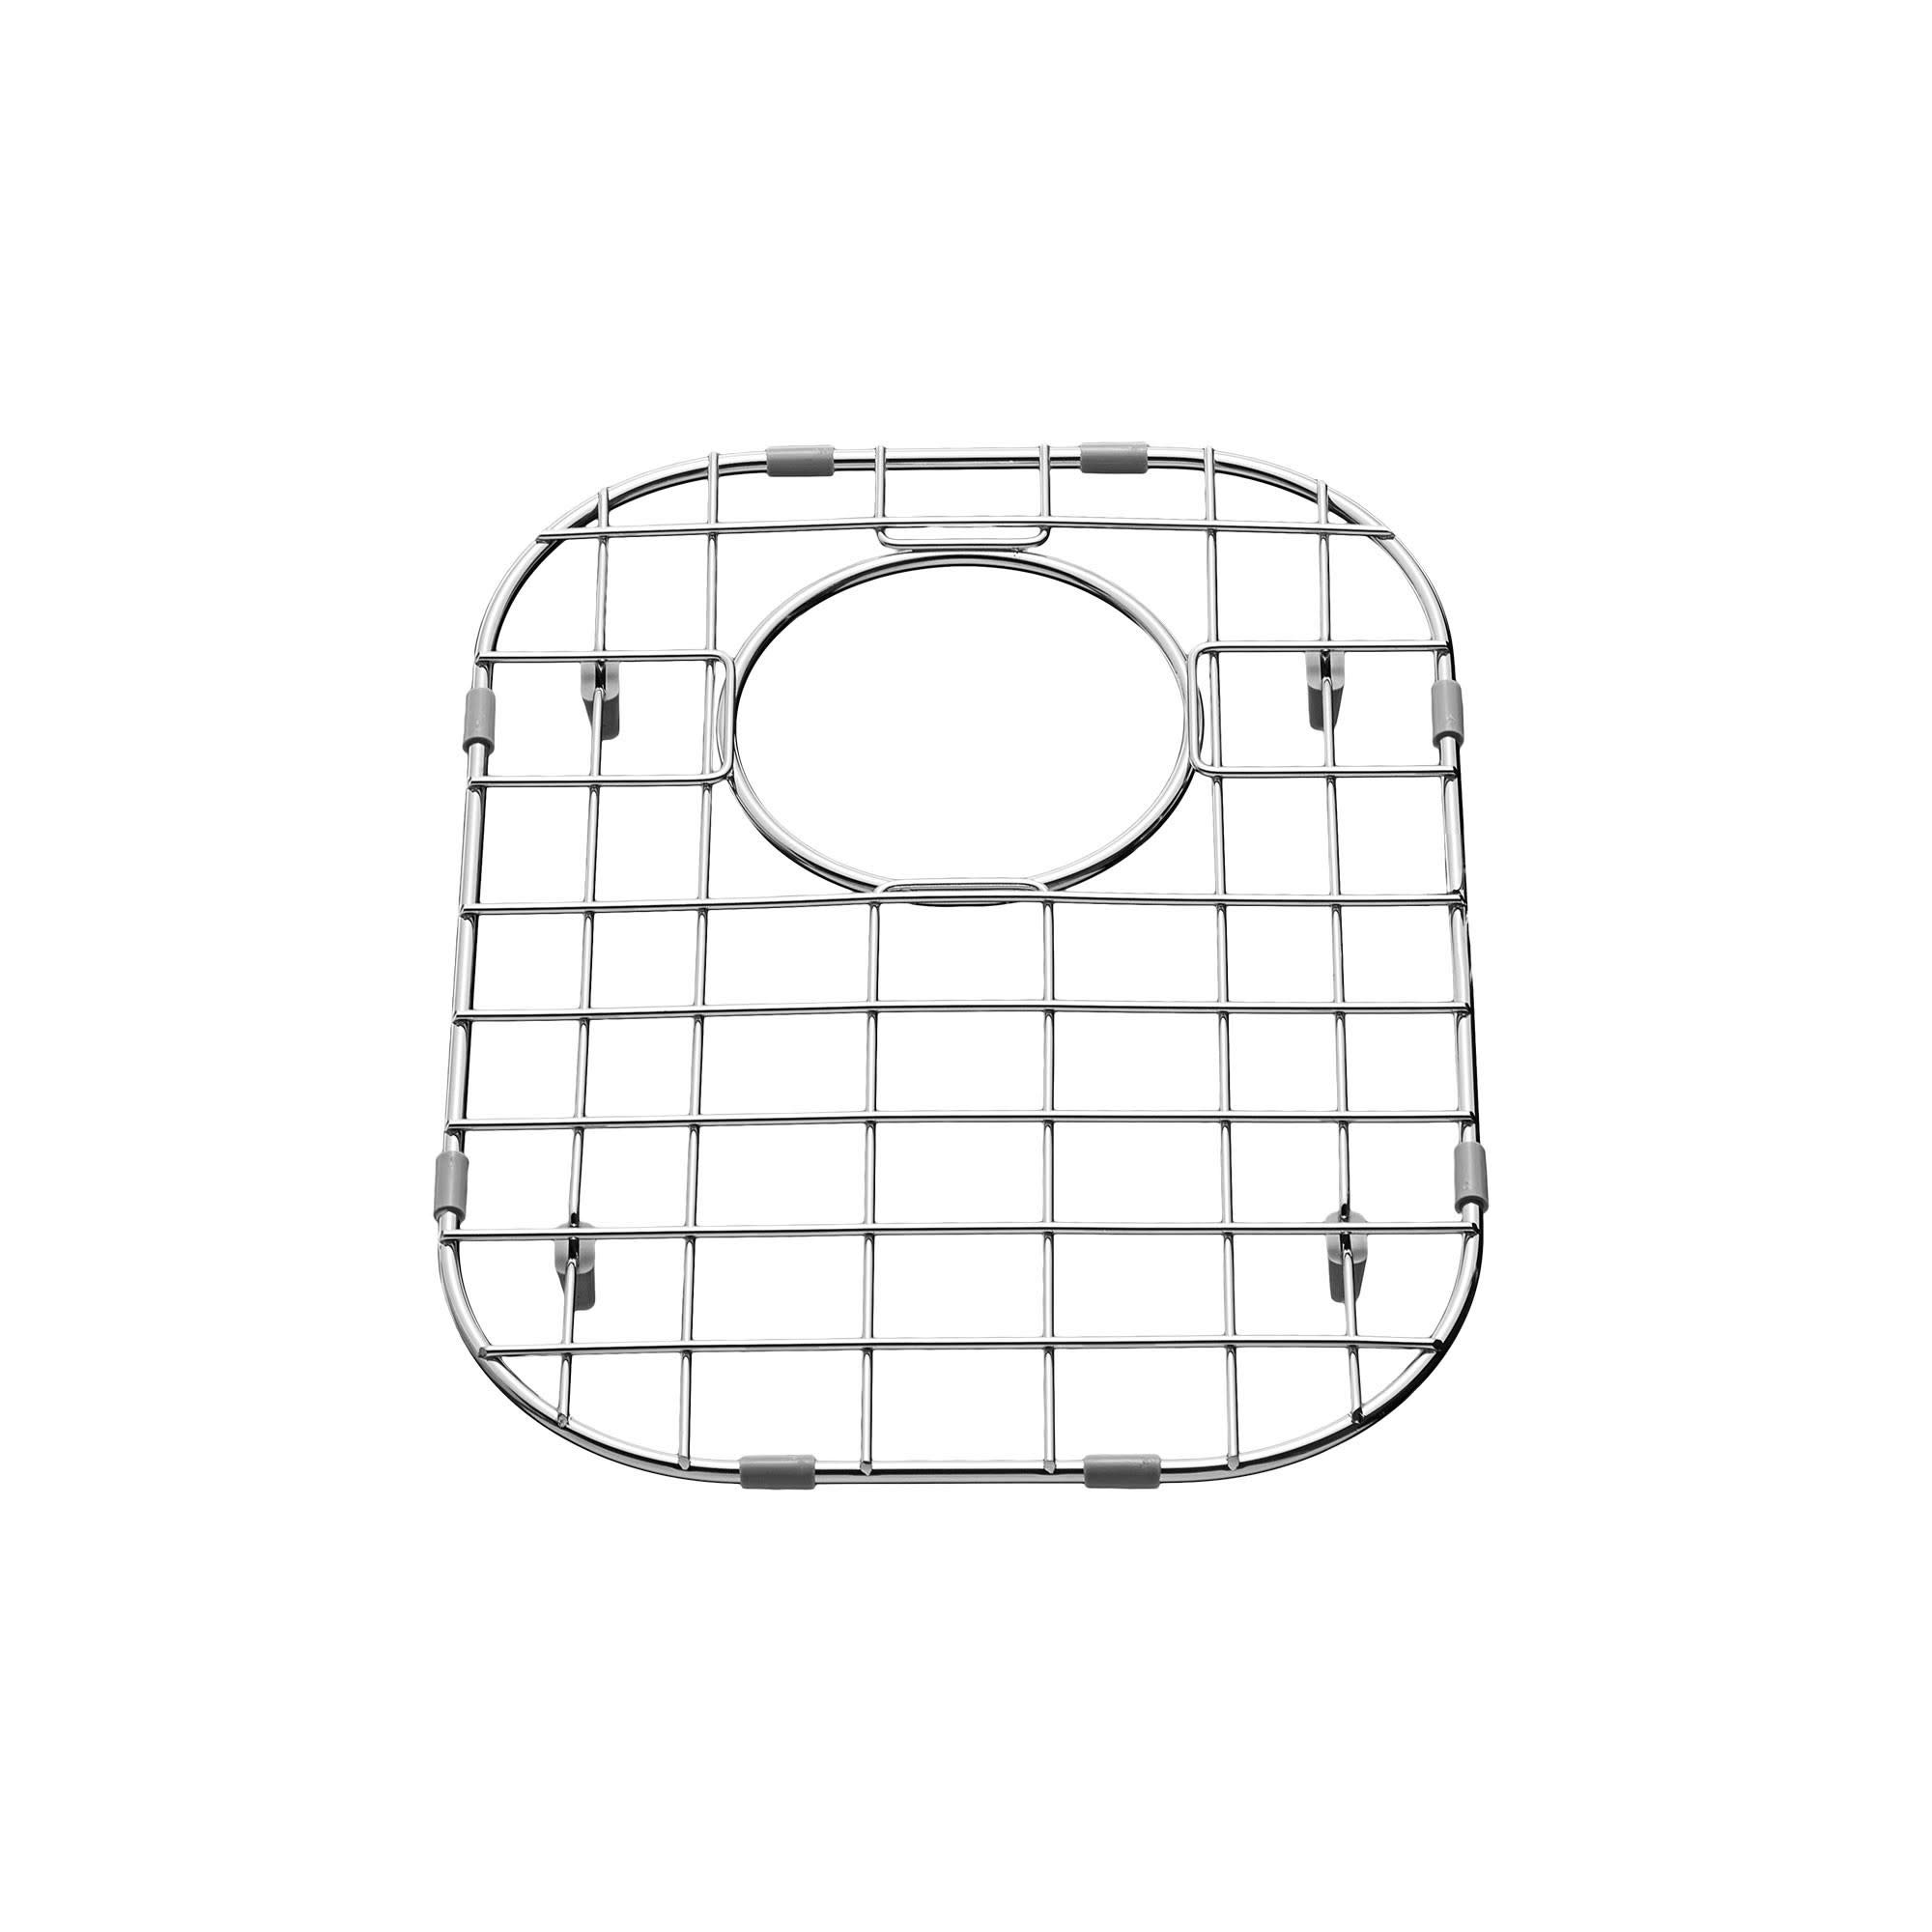 American Standard 8446.312000S.075 Portsmouth 60/40 Double Grid-Right Bowl, Stainless Steel